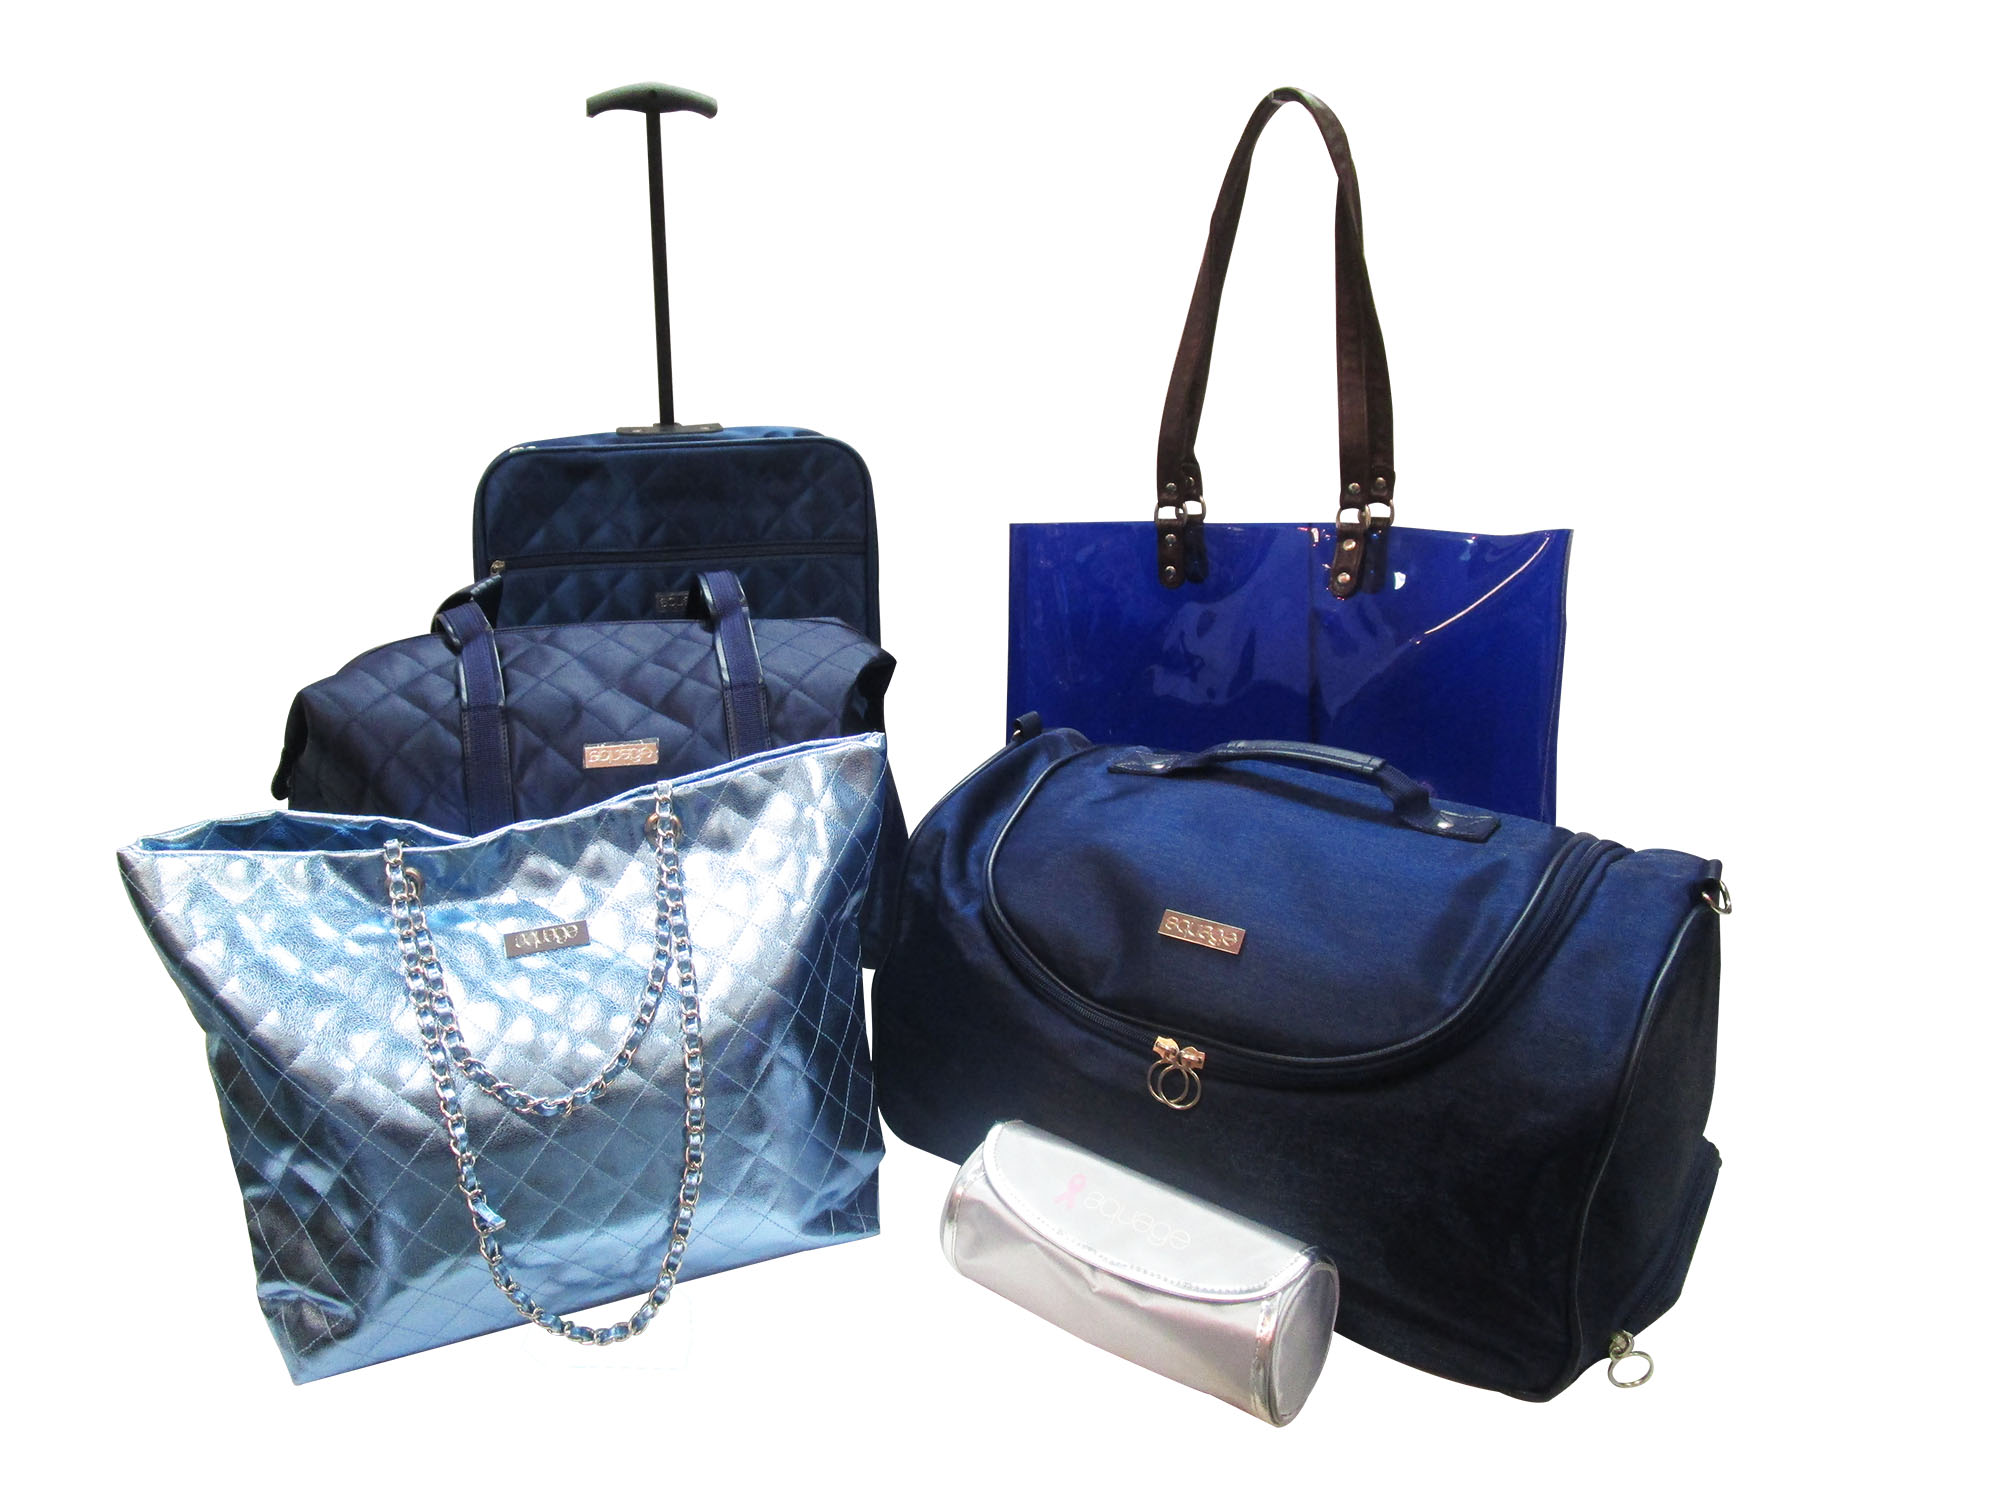 aquage - all bags